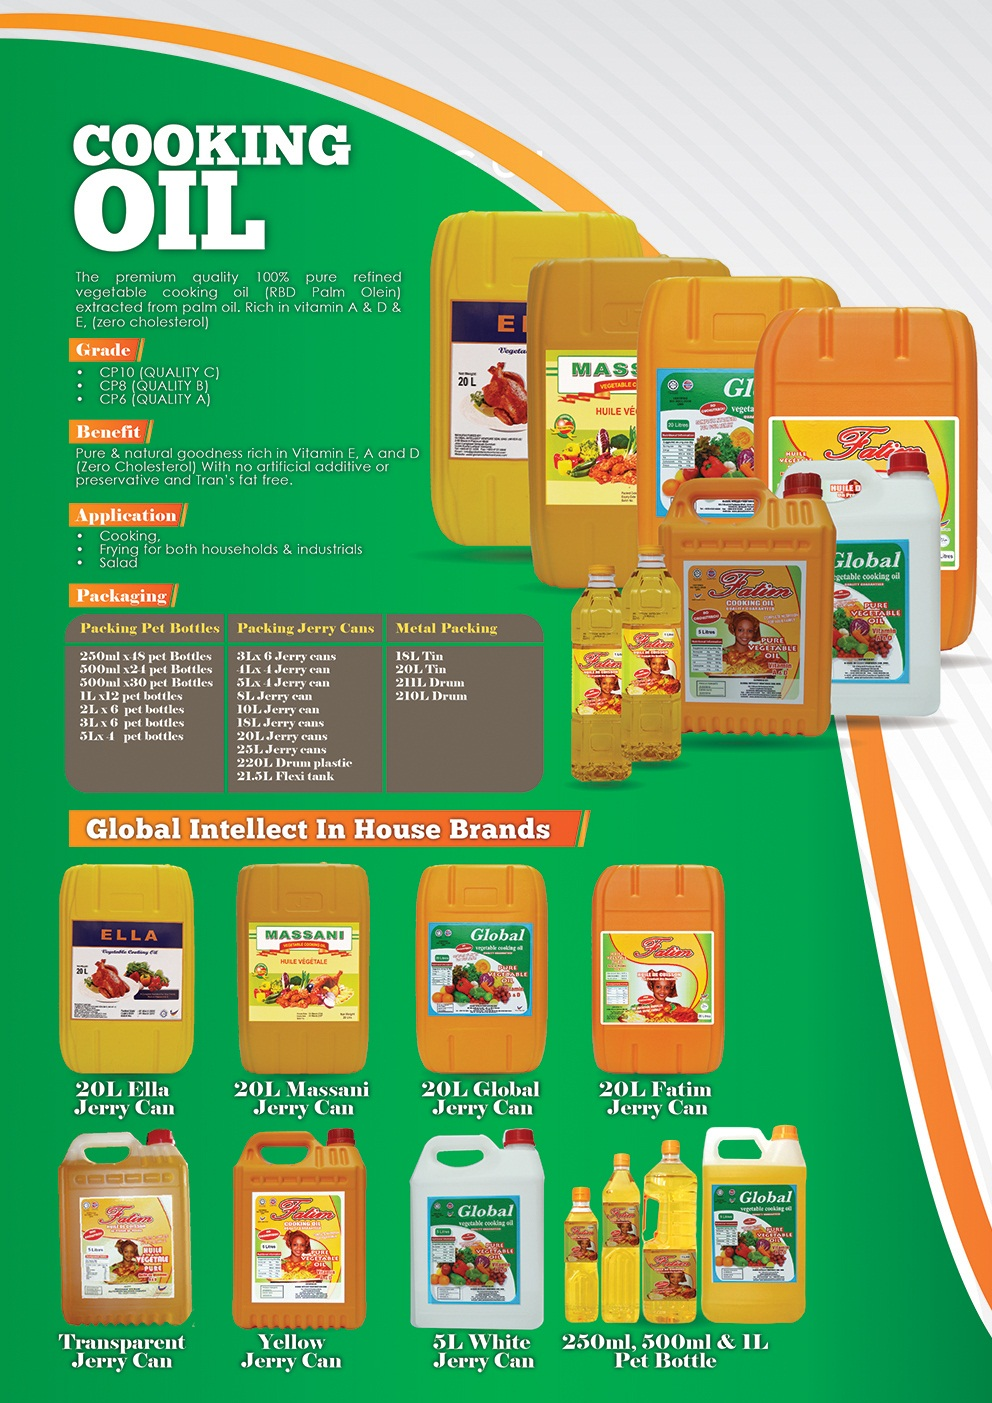 catolouge cooking oil